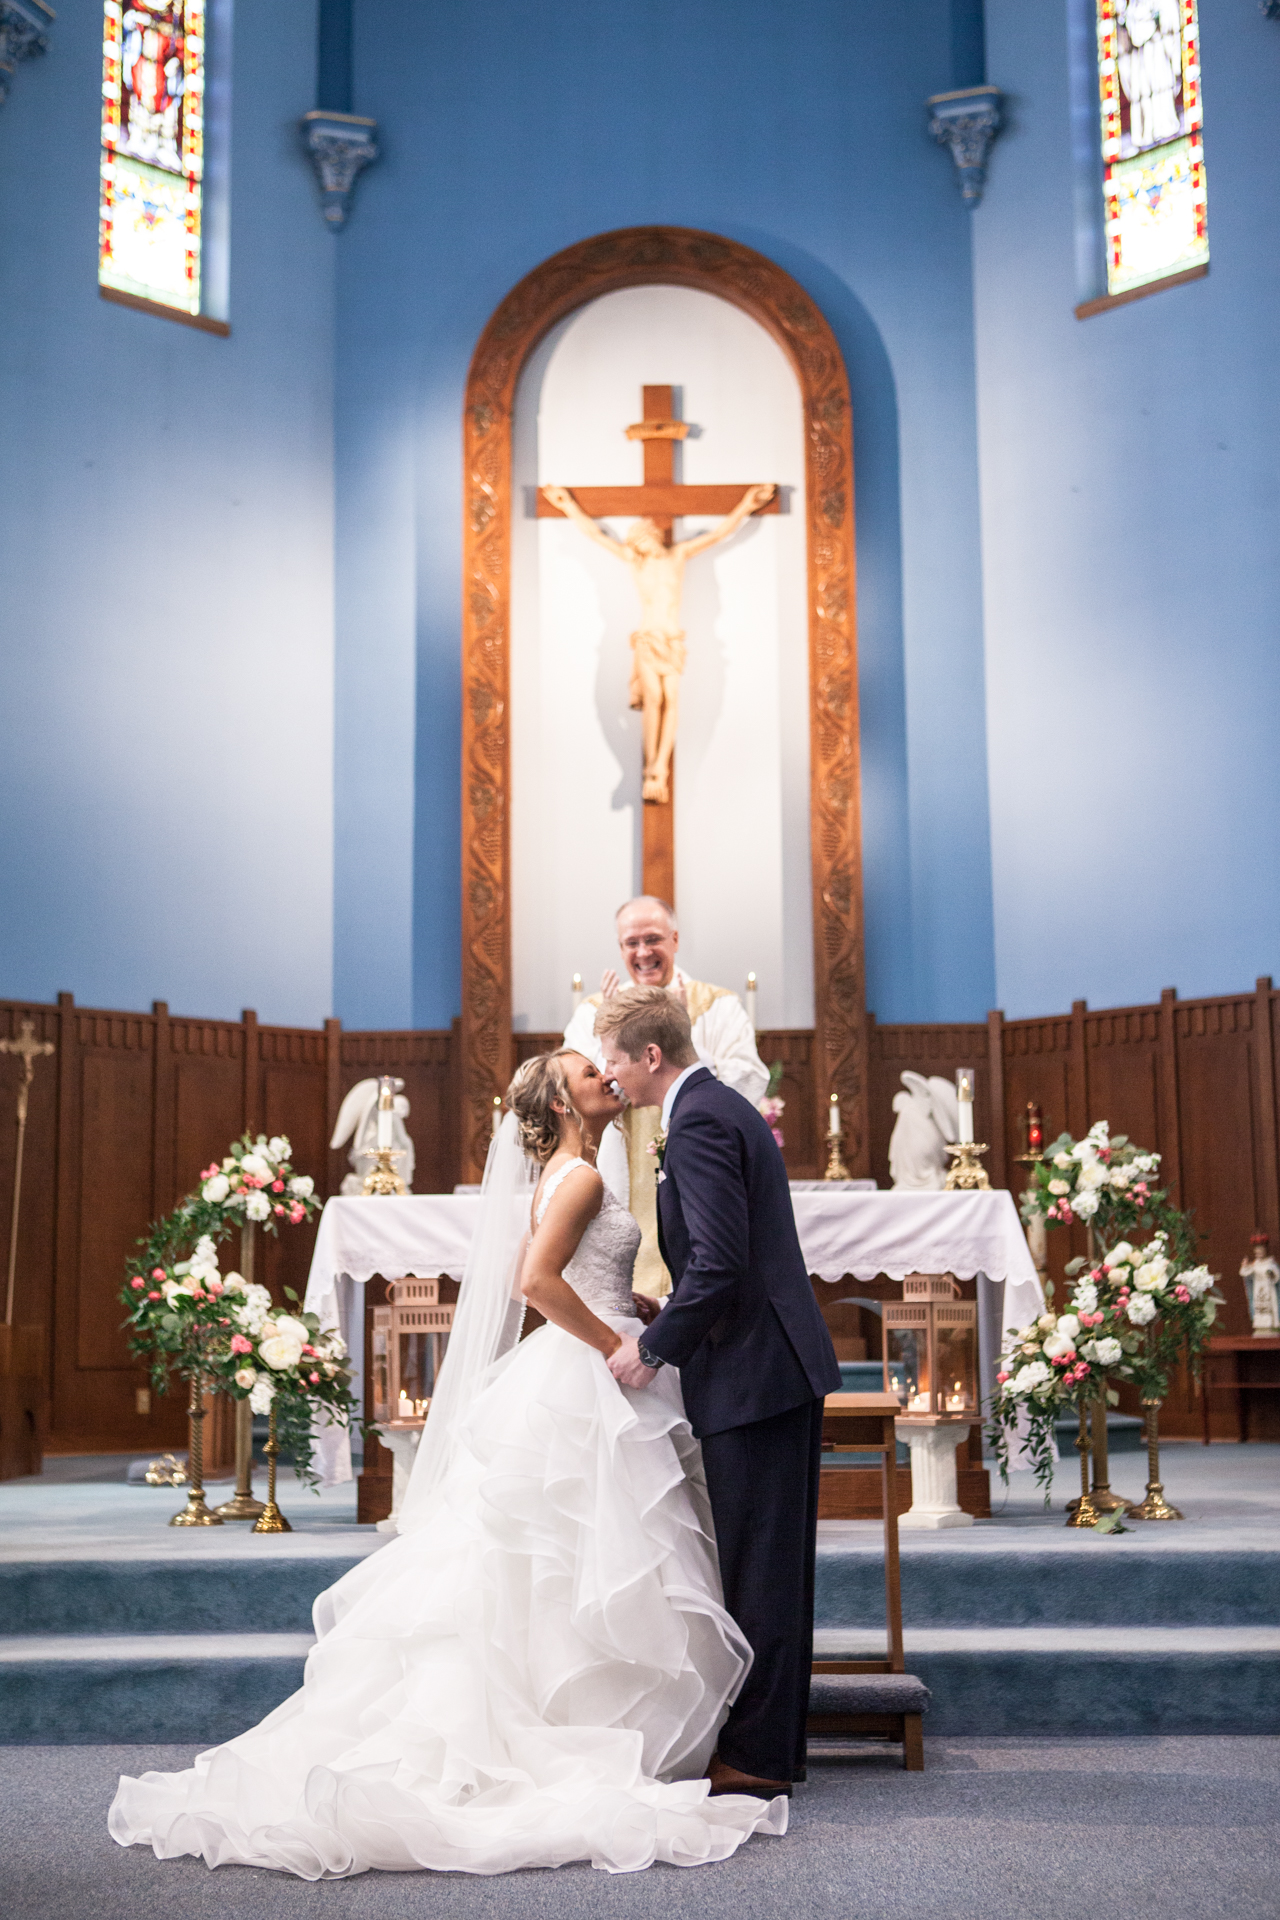 St. Patrick Catholic Church Minonk Packard Plaza Peoria Bloomington Normal Illinois Wedding Photographer Photographers Peoria Riverfront-24.jpg